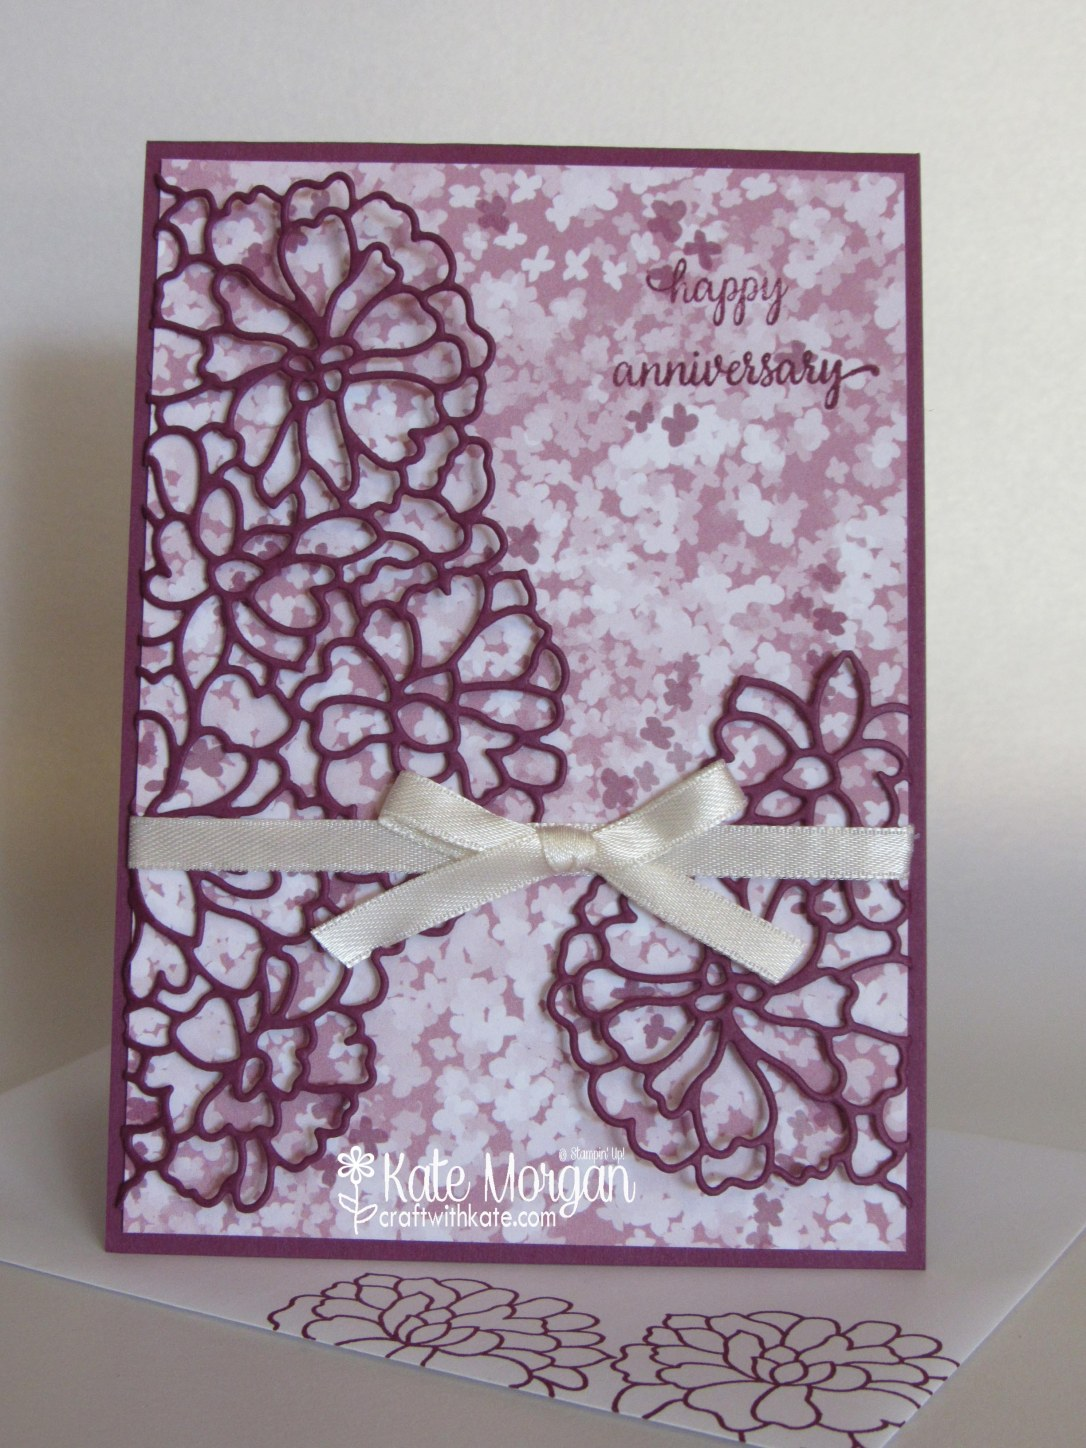 anniversary-card-using-stampin-up-so-detailed-thinlits-blooms-and-bliss-dsp-by-kate-morgan-independent-demonstrator-melbourne-occasions-2017